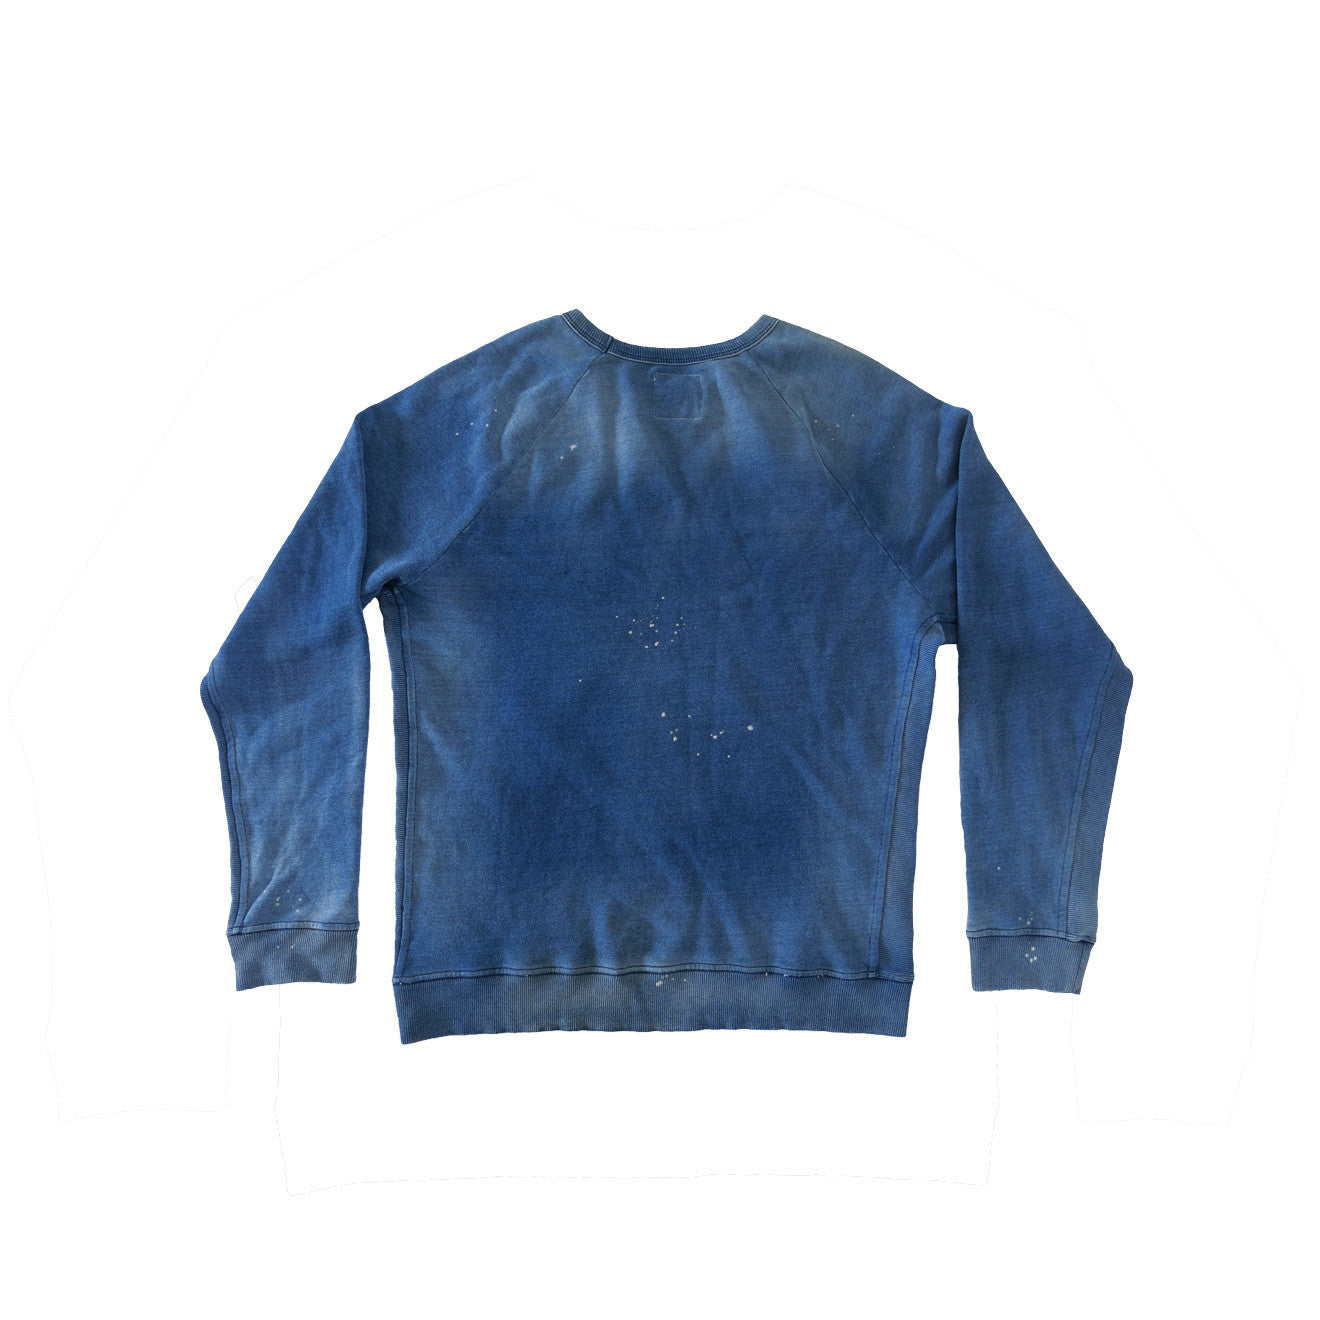 LA OVERLAP PUFF PRINT MEN'S INDIGO SWEATSHIRT | Instantly Available